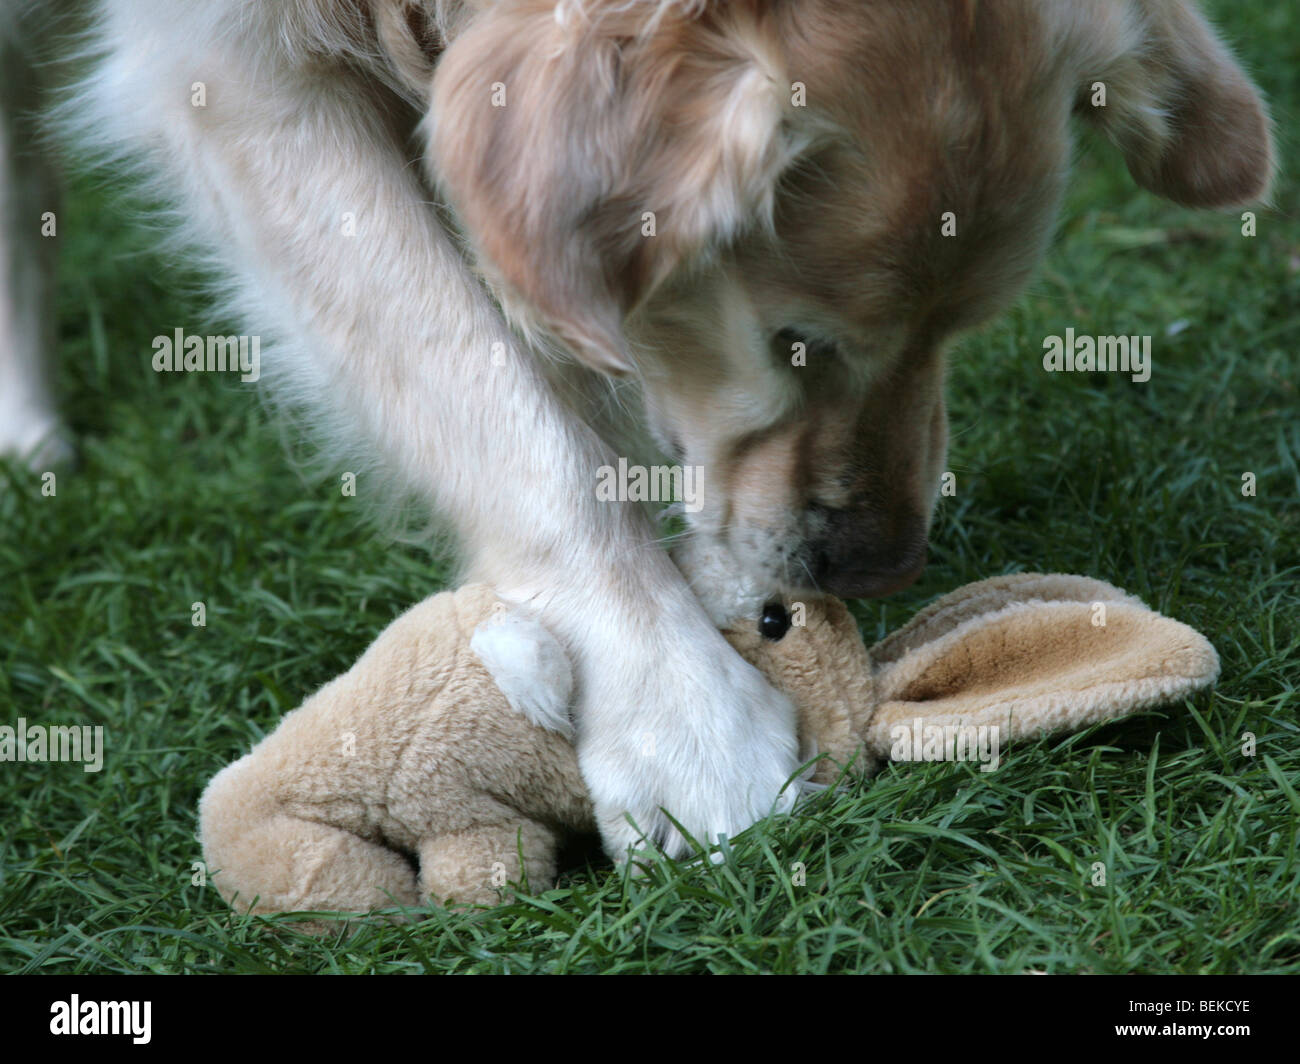 A naughty dog playing with a cuddly toy, a bad dog. - Stock Image